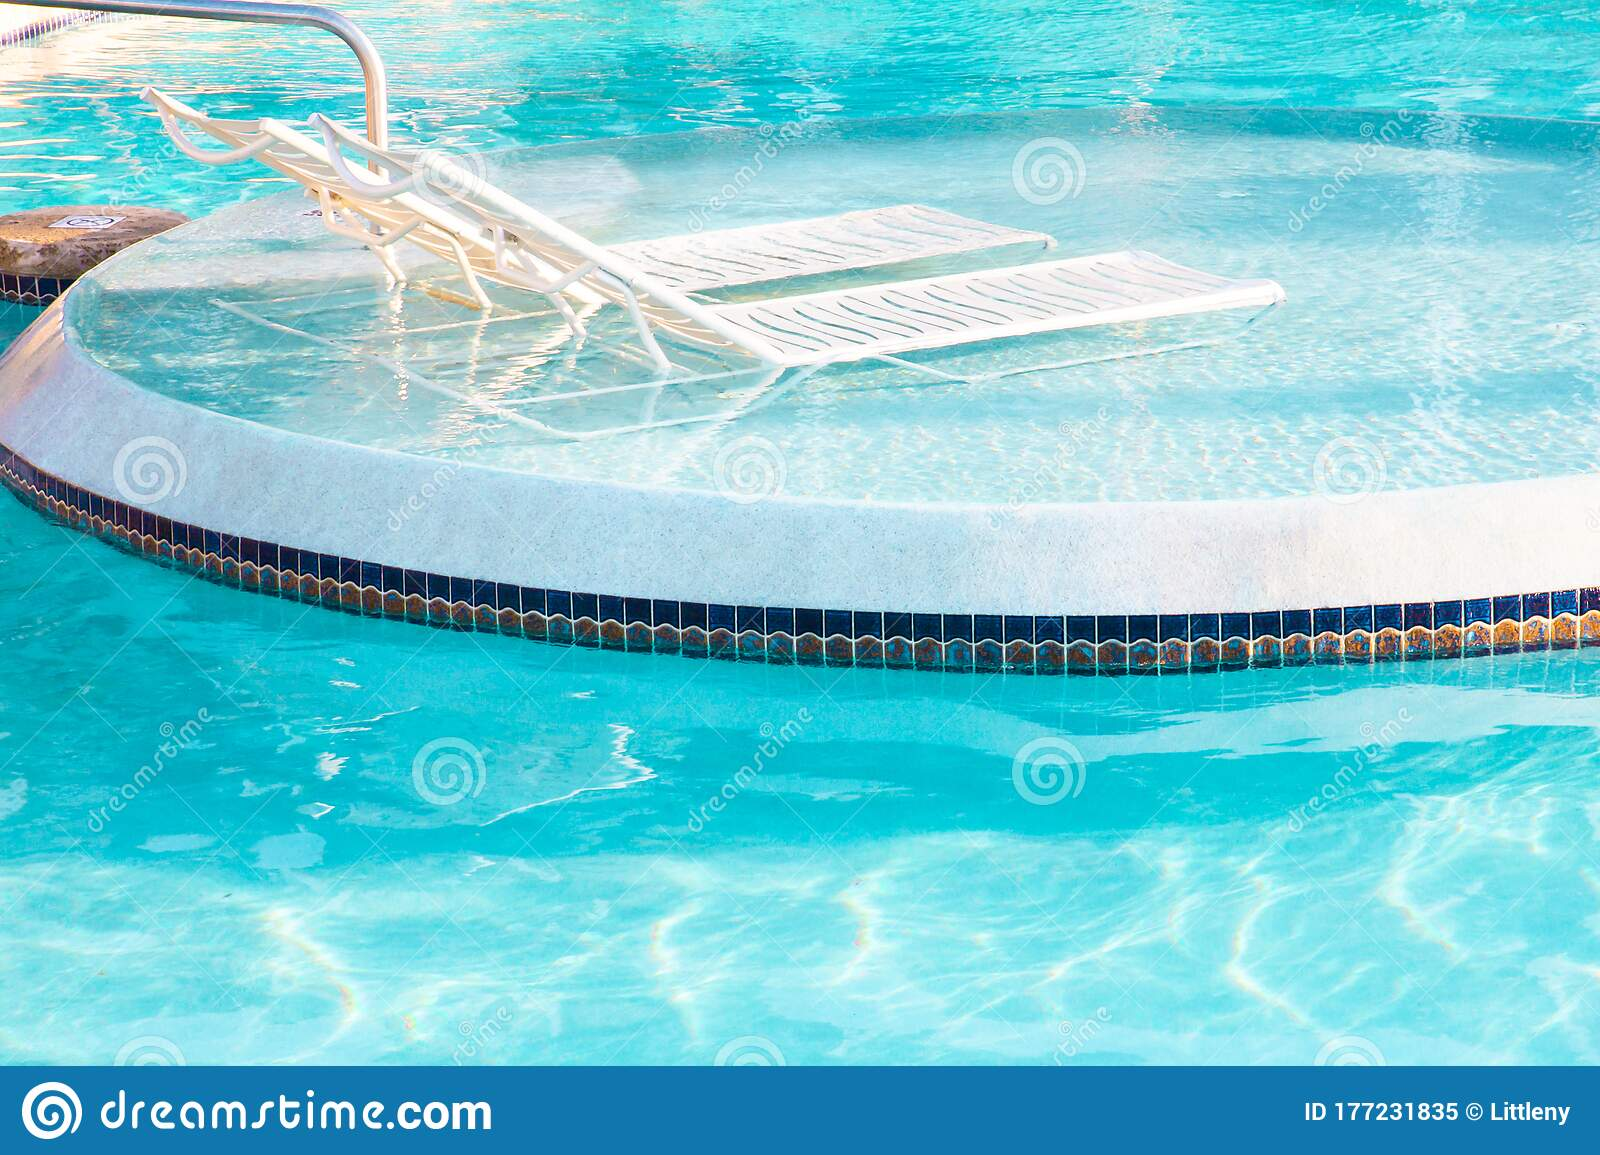 Outdoor Natural Gas Fire Pit Table, Lounge Chairs At Luxury Hotel Swimming Pool Stock Image Image Of Luxury Chairs 177231835